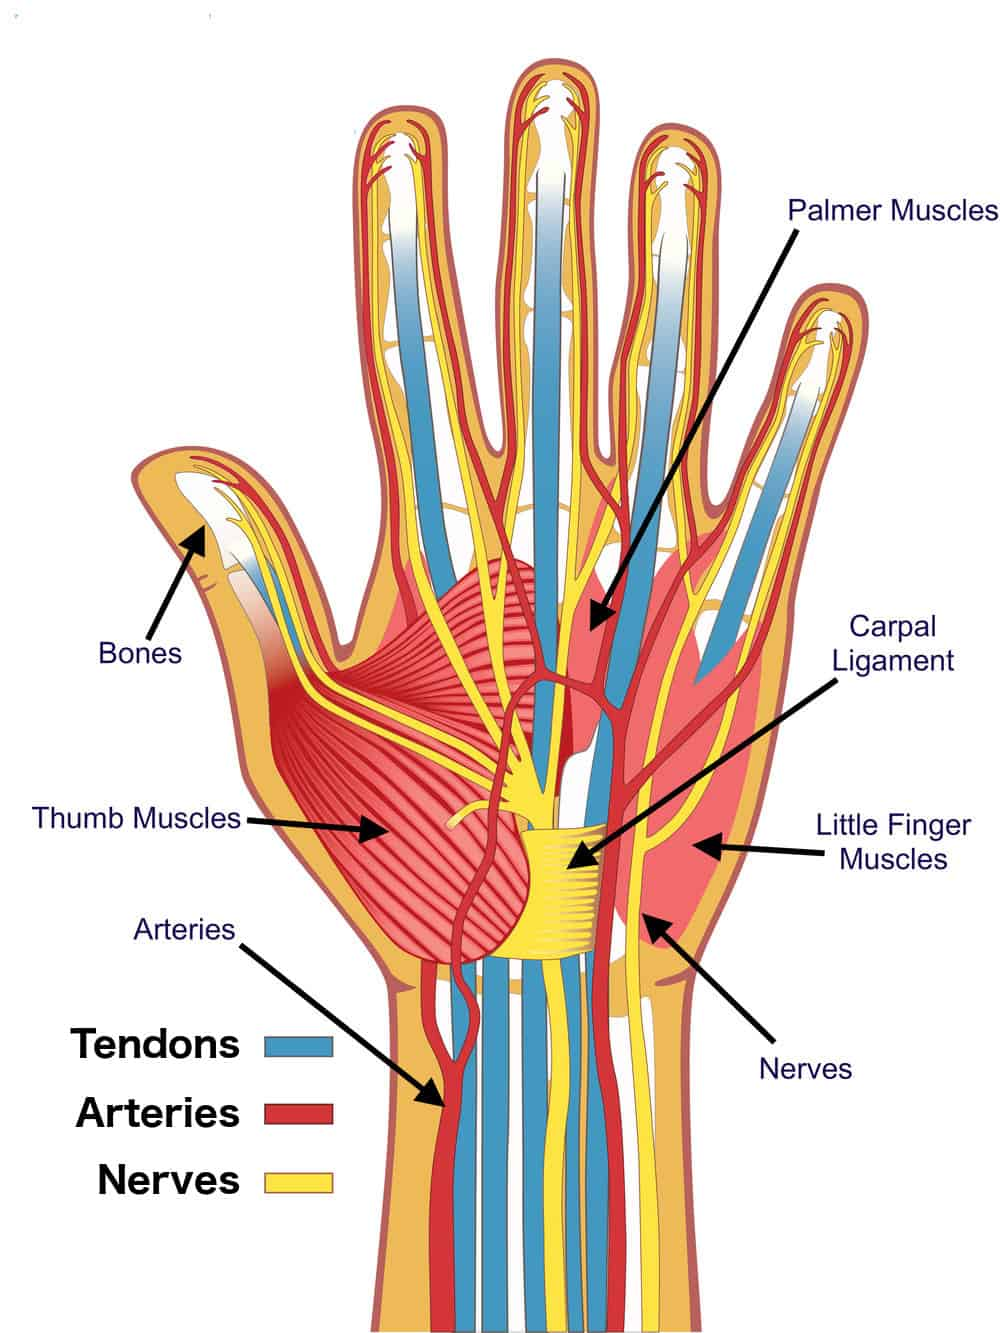 Anatomy of the Hand - Brace Access